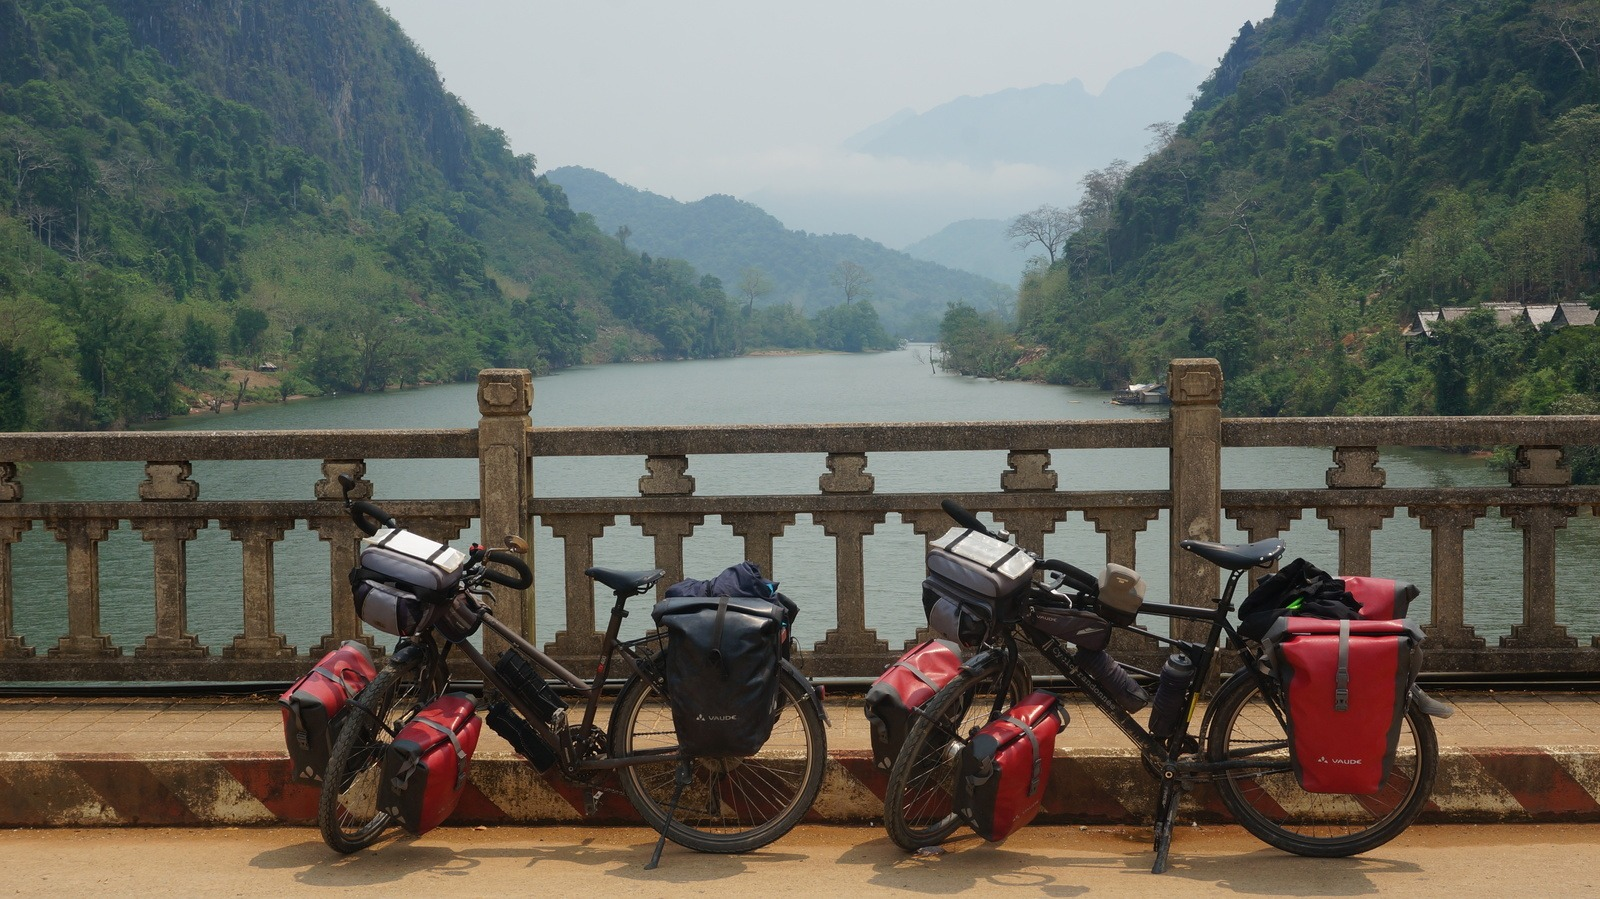 Our bicycles in Laos